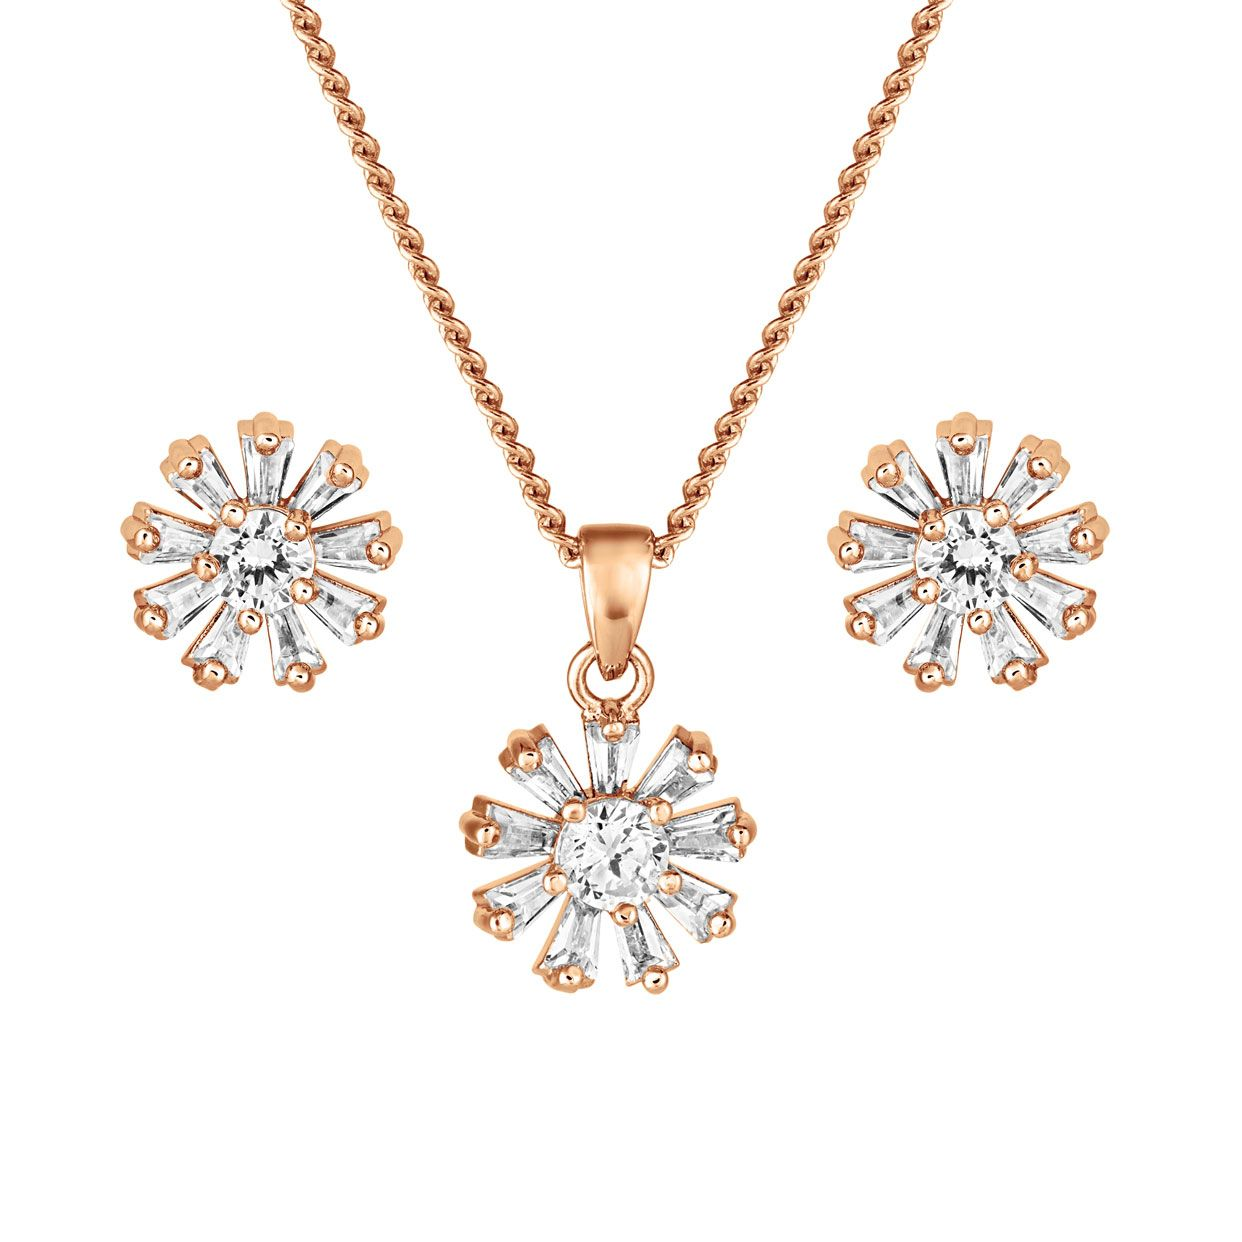 Buckley London Finchley Set - Rose Gold